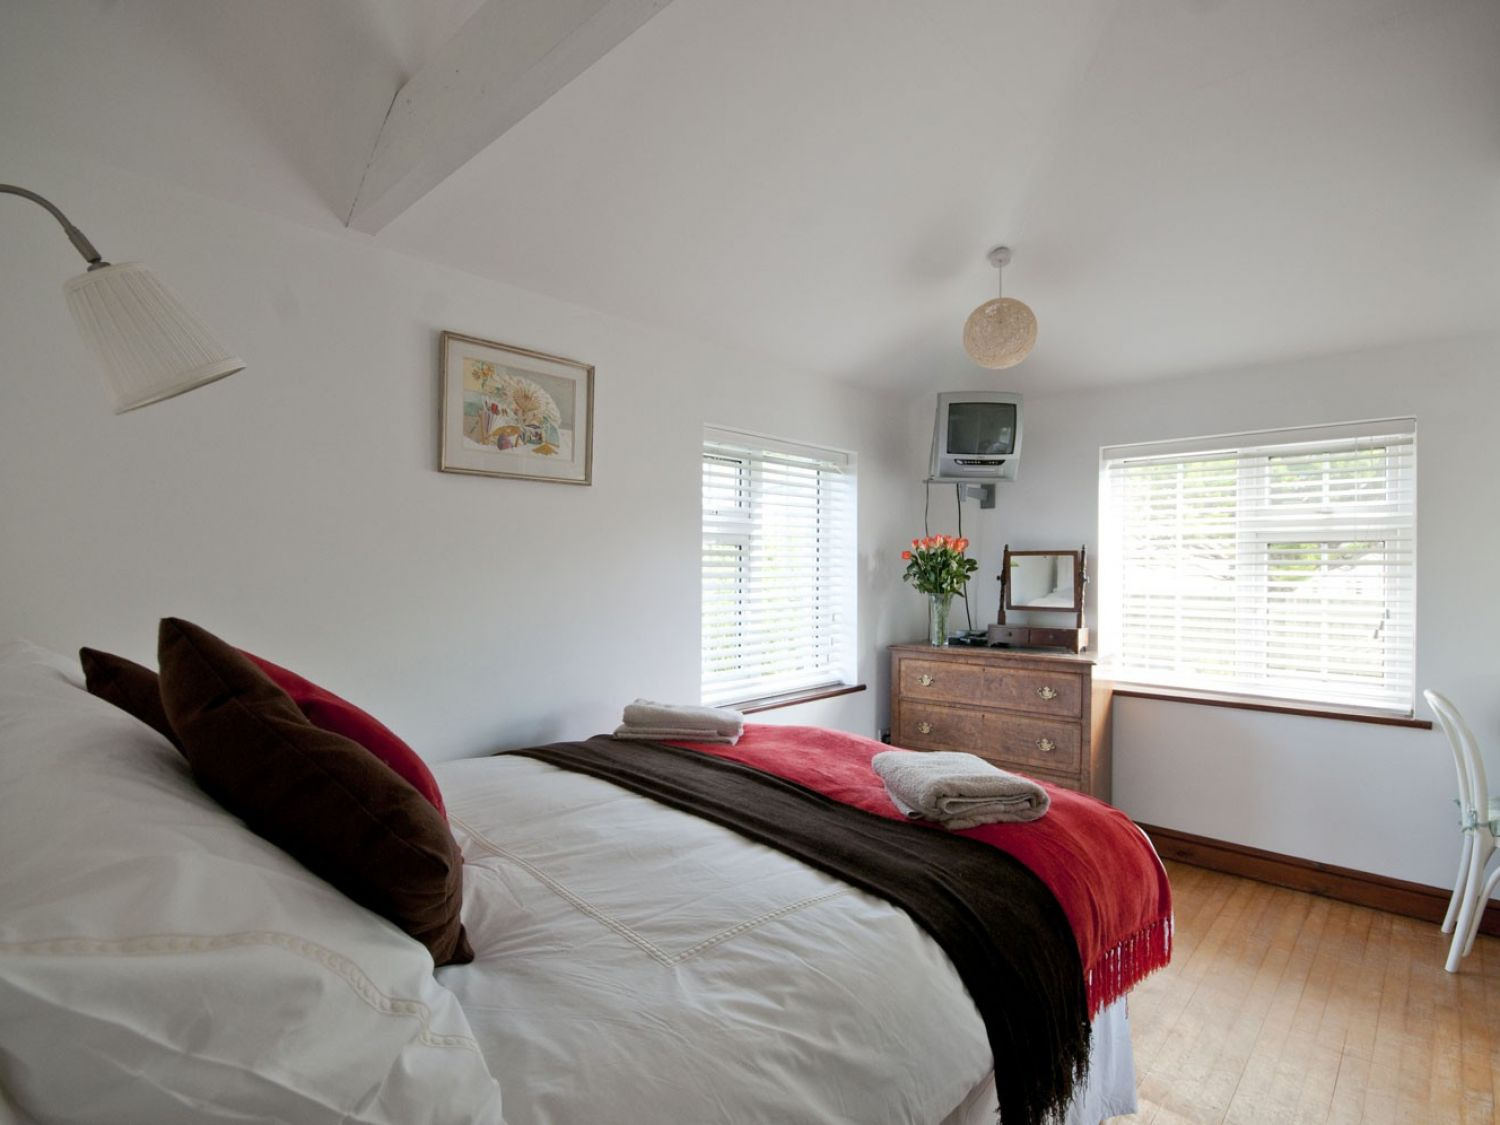 Rosemaddon in Crantock - sleeps 6 people